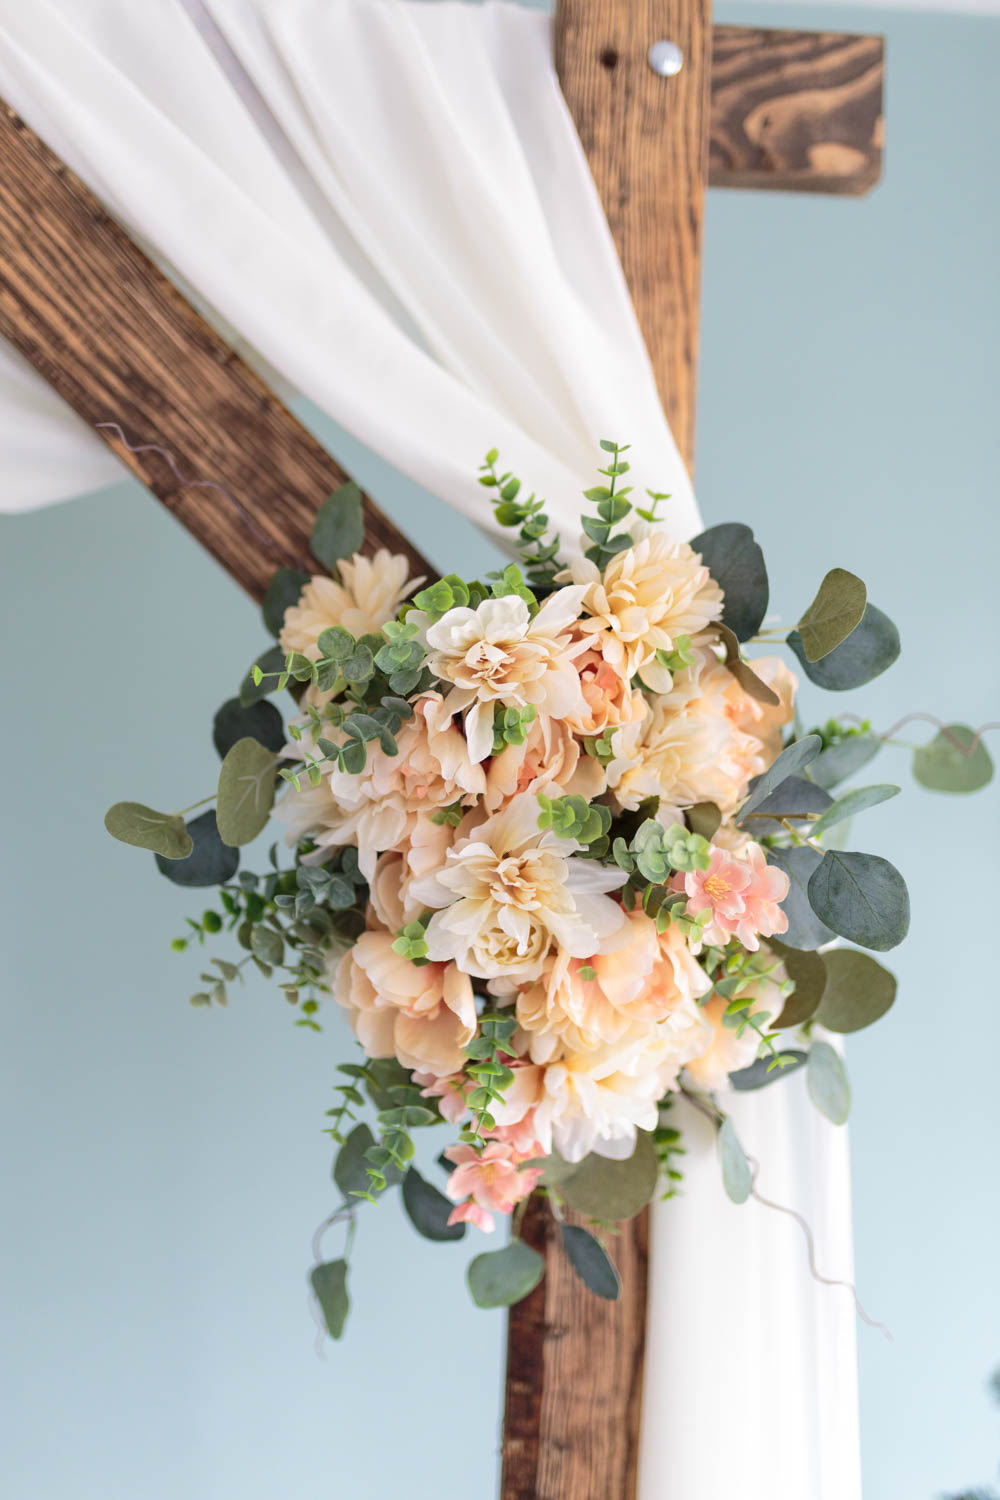 Flowers on the wedding arch